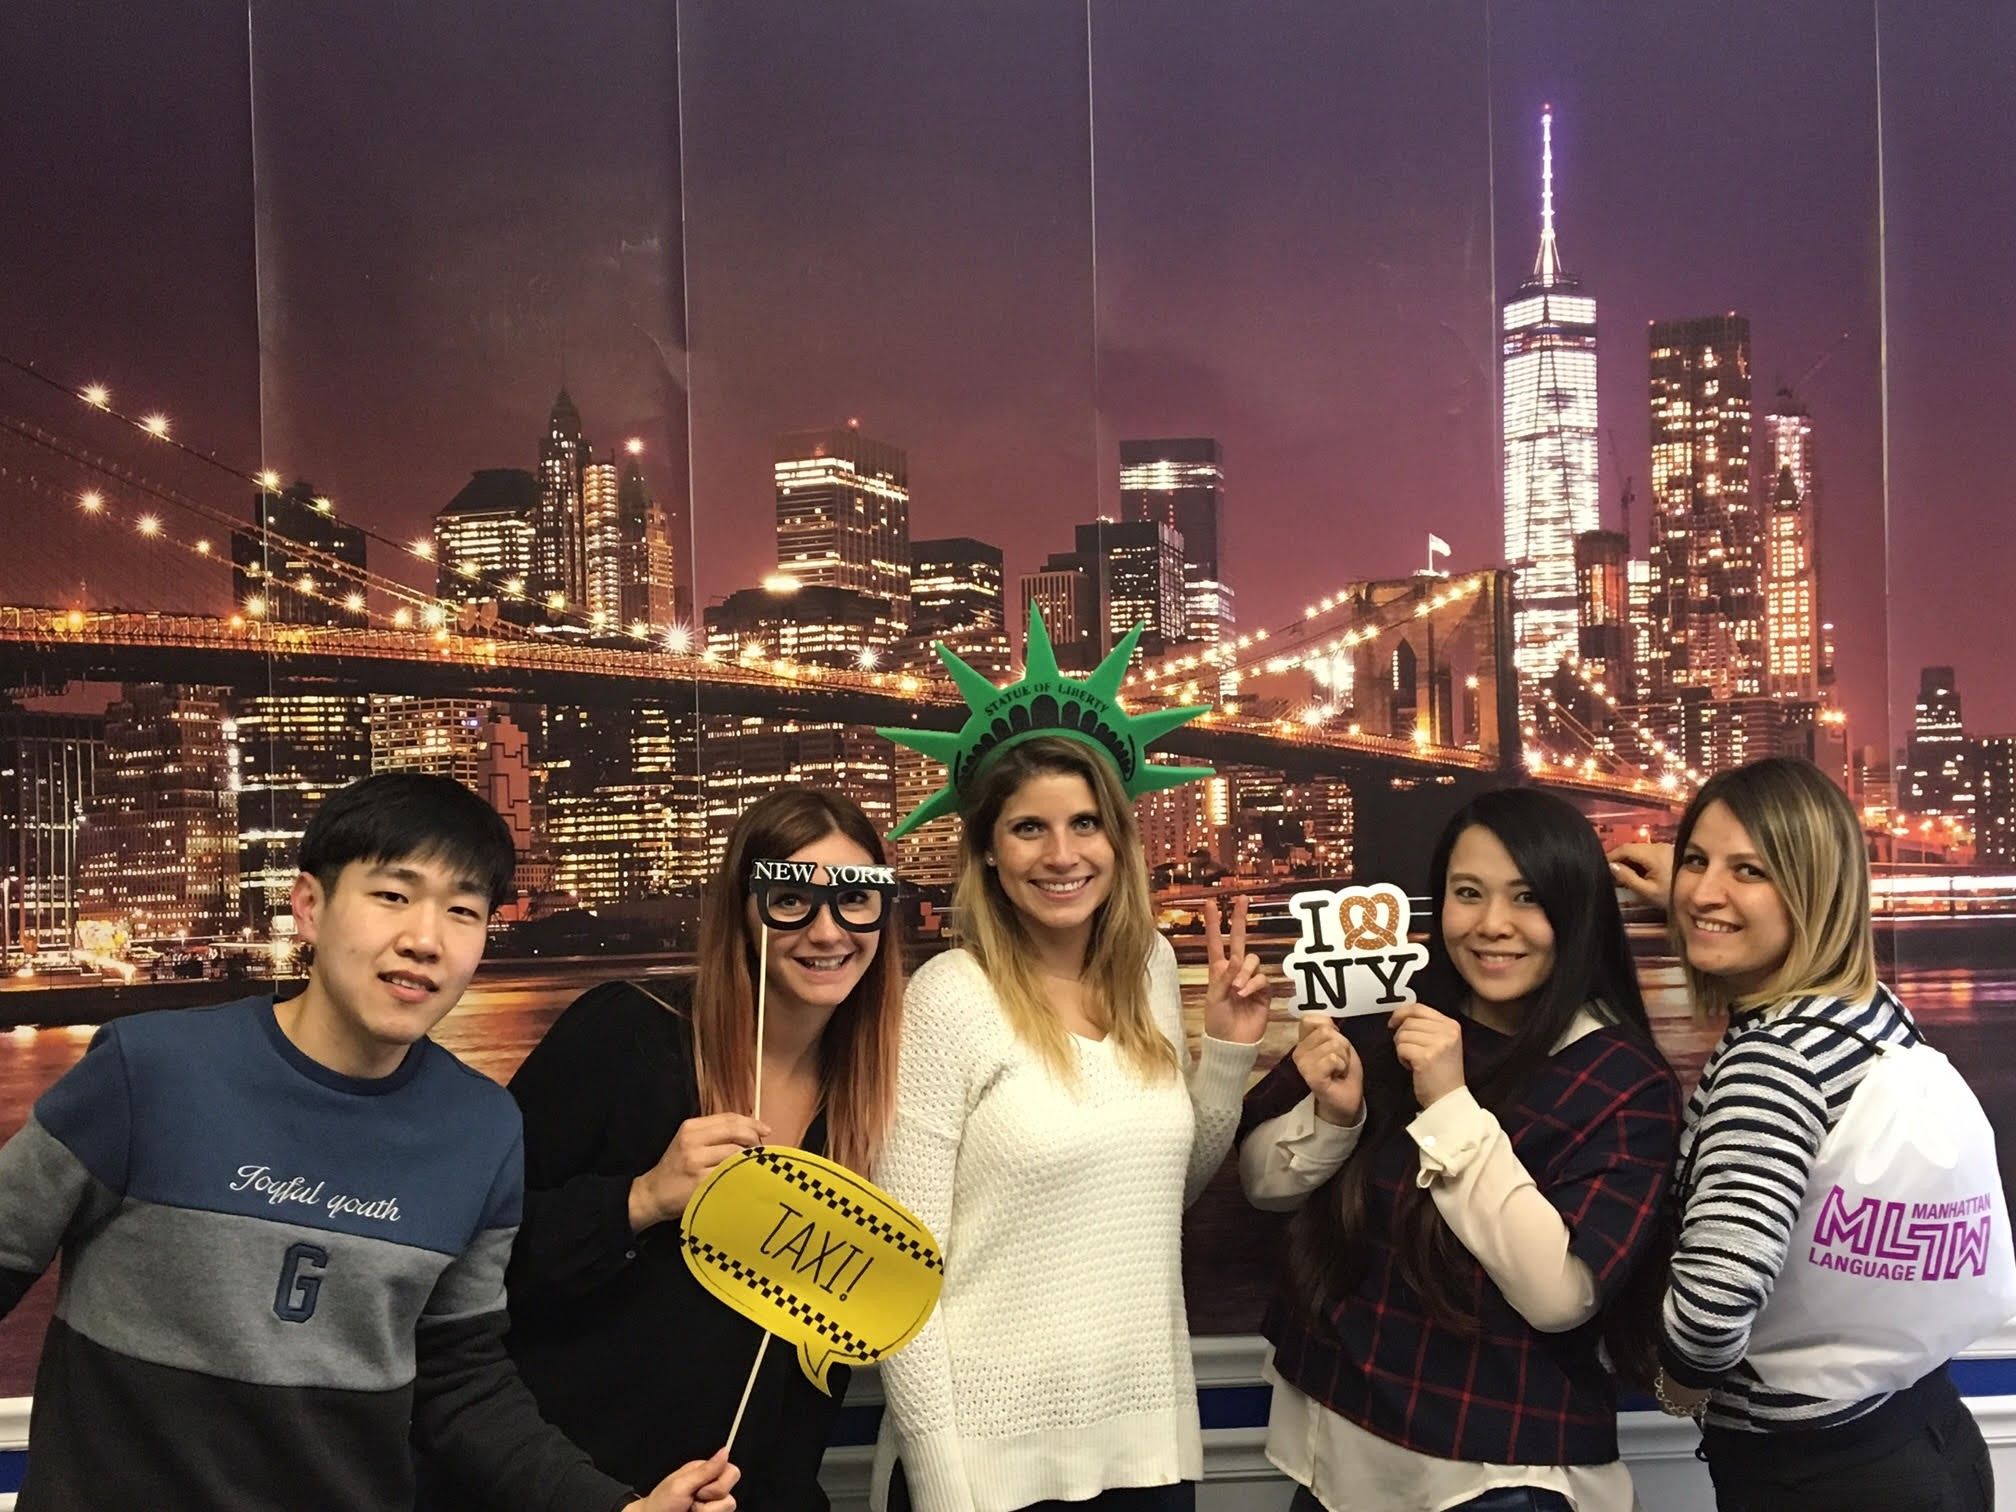 Manhattan Language host a fantastic Open House evening